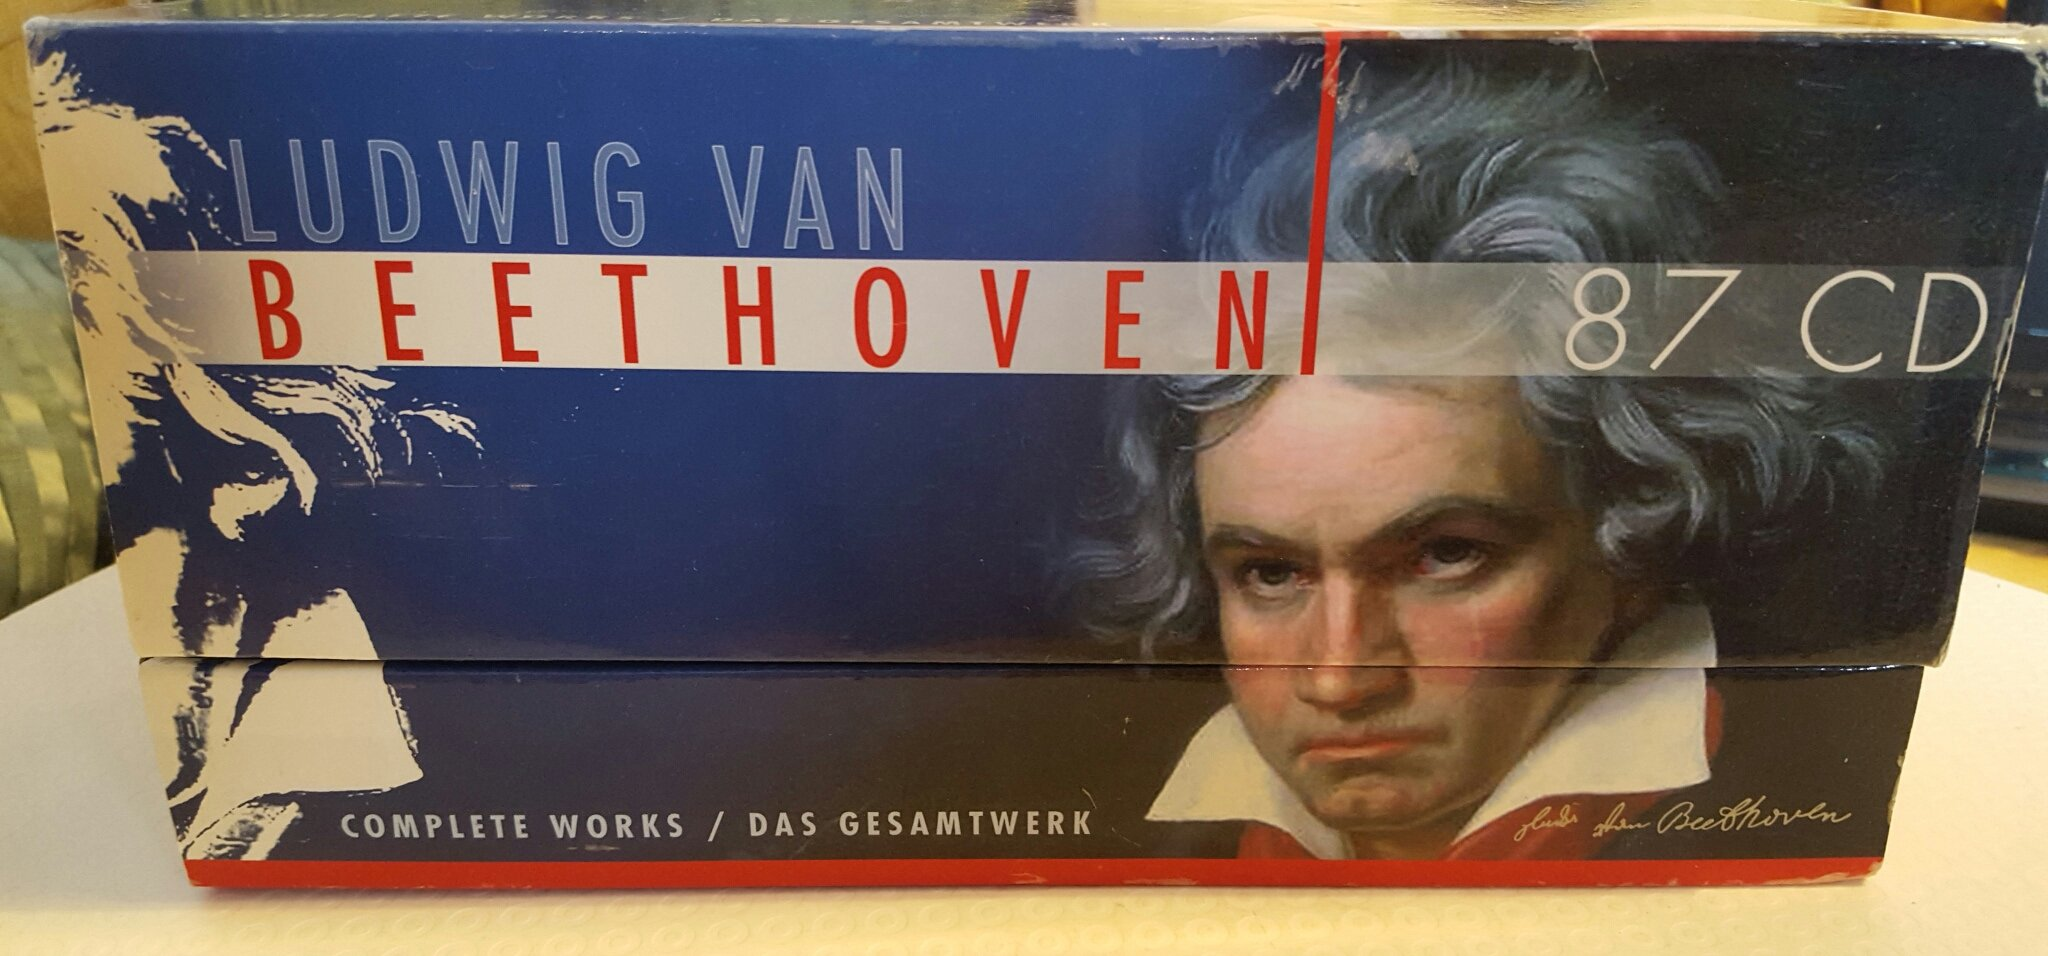 Beethoven 87 CD Complete works